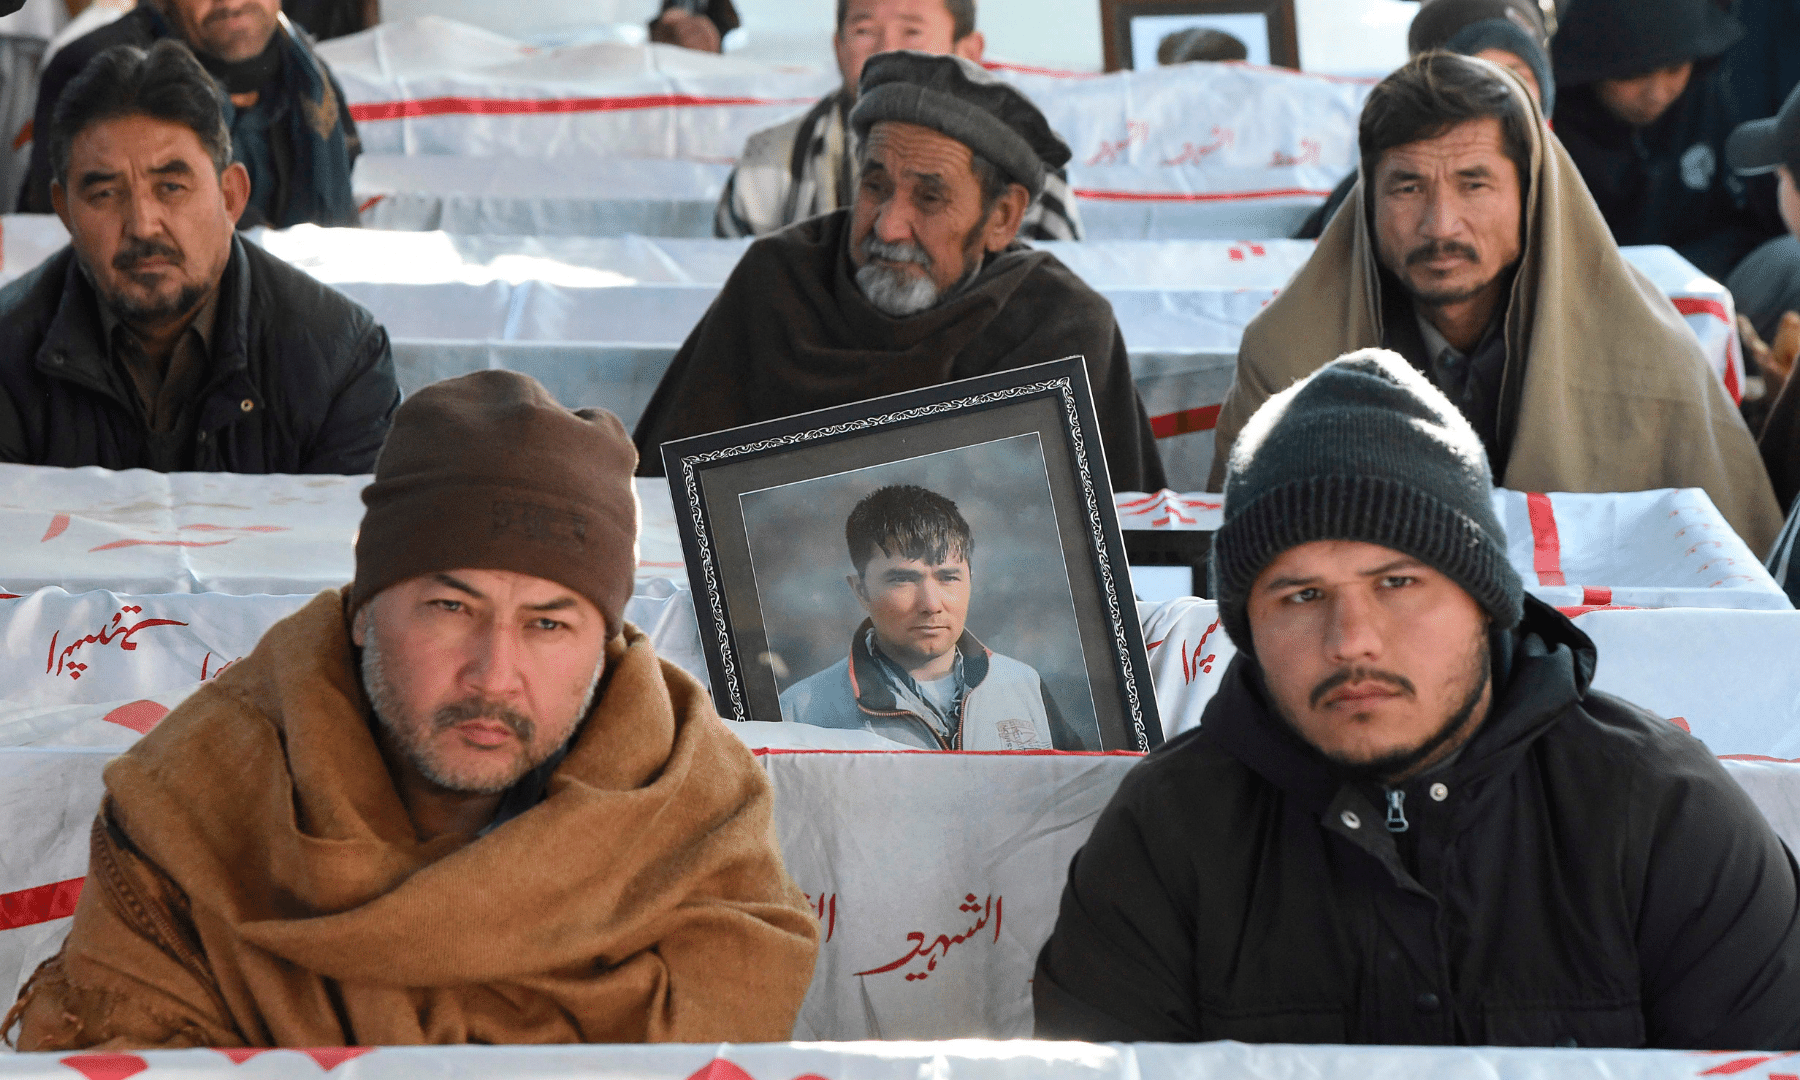 Mourners from the Shia Hazara community gather near the coffins of miners who were killed in an attack by gunmen in the mountainous Machh area, during a sit-in protest on the outskirts of Quetta on Jan 6. — AFP